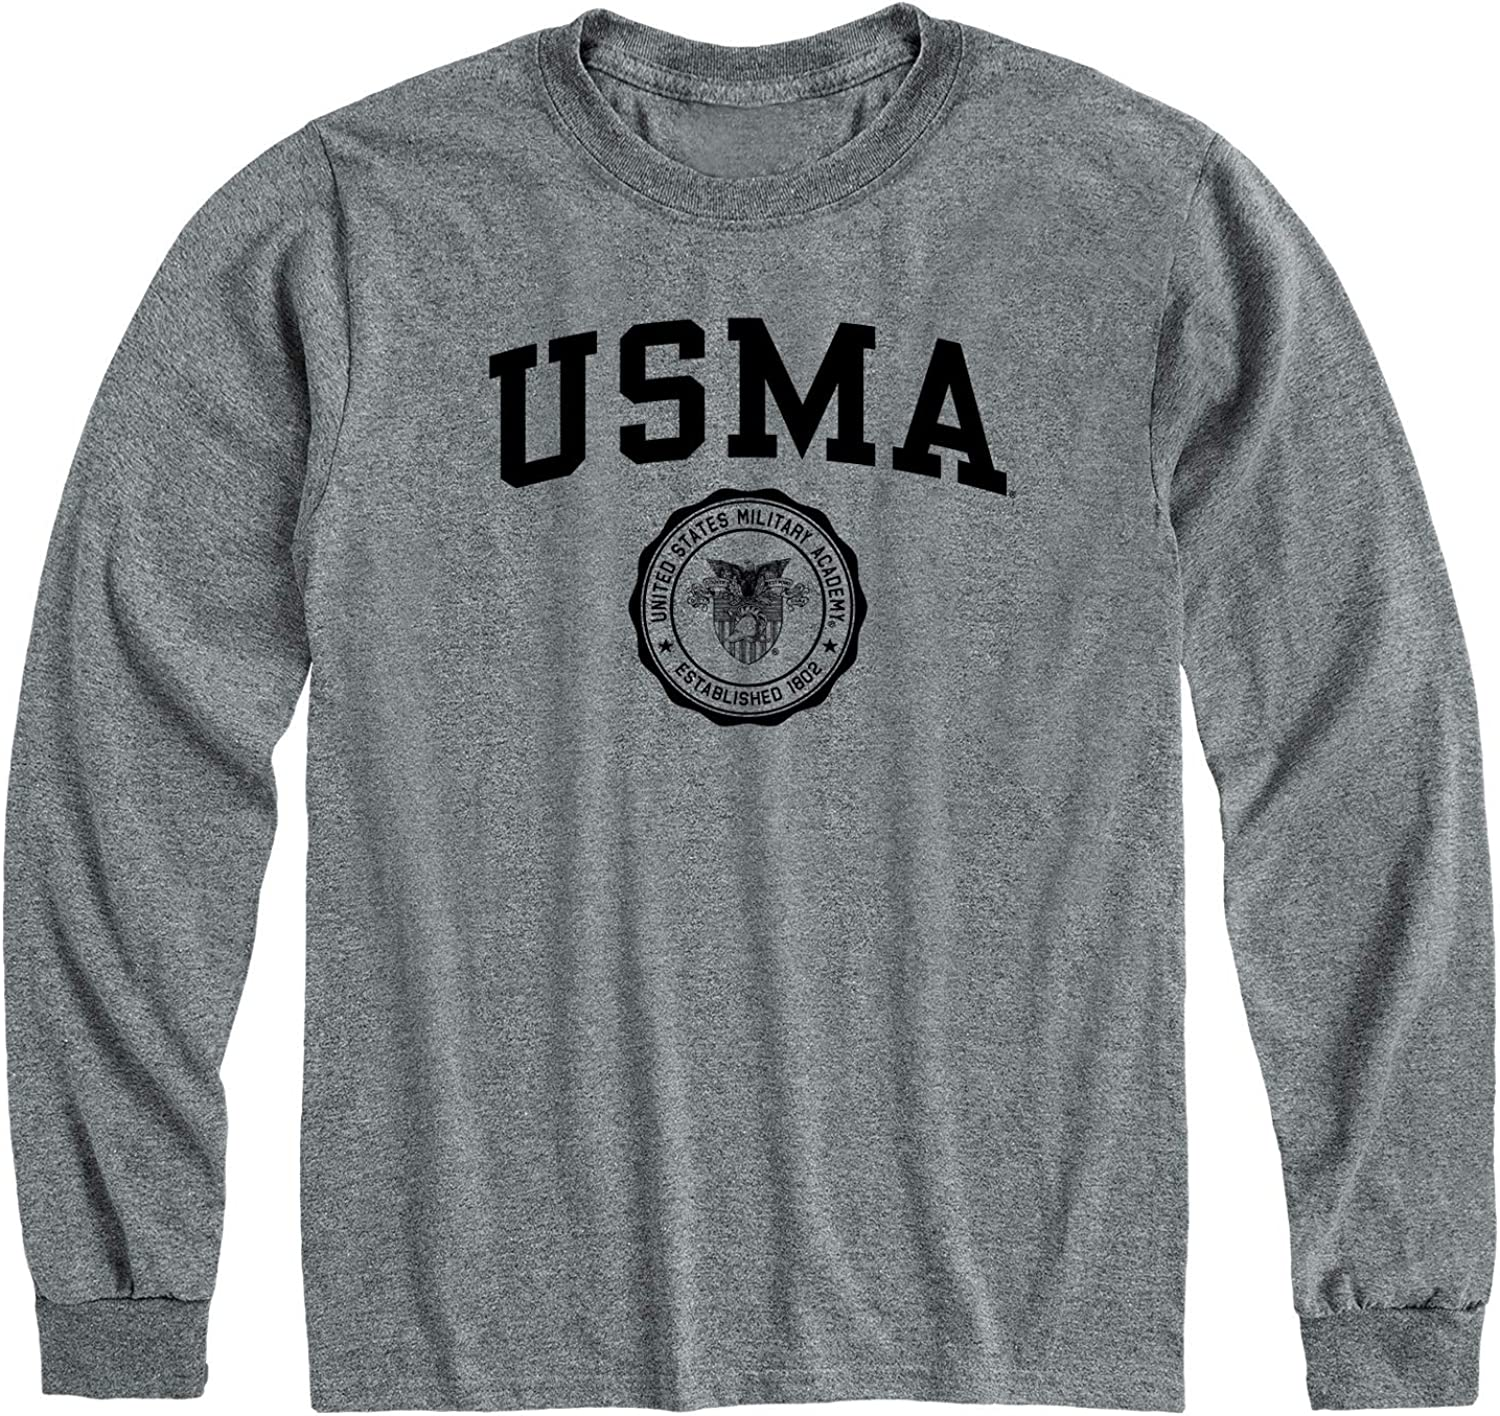 Ivysport Long Sleeve Cotton Adult T-Shirt, Heritage Logo, Grey, NCAA Colleges and Universities